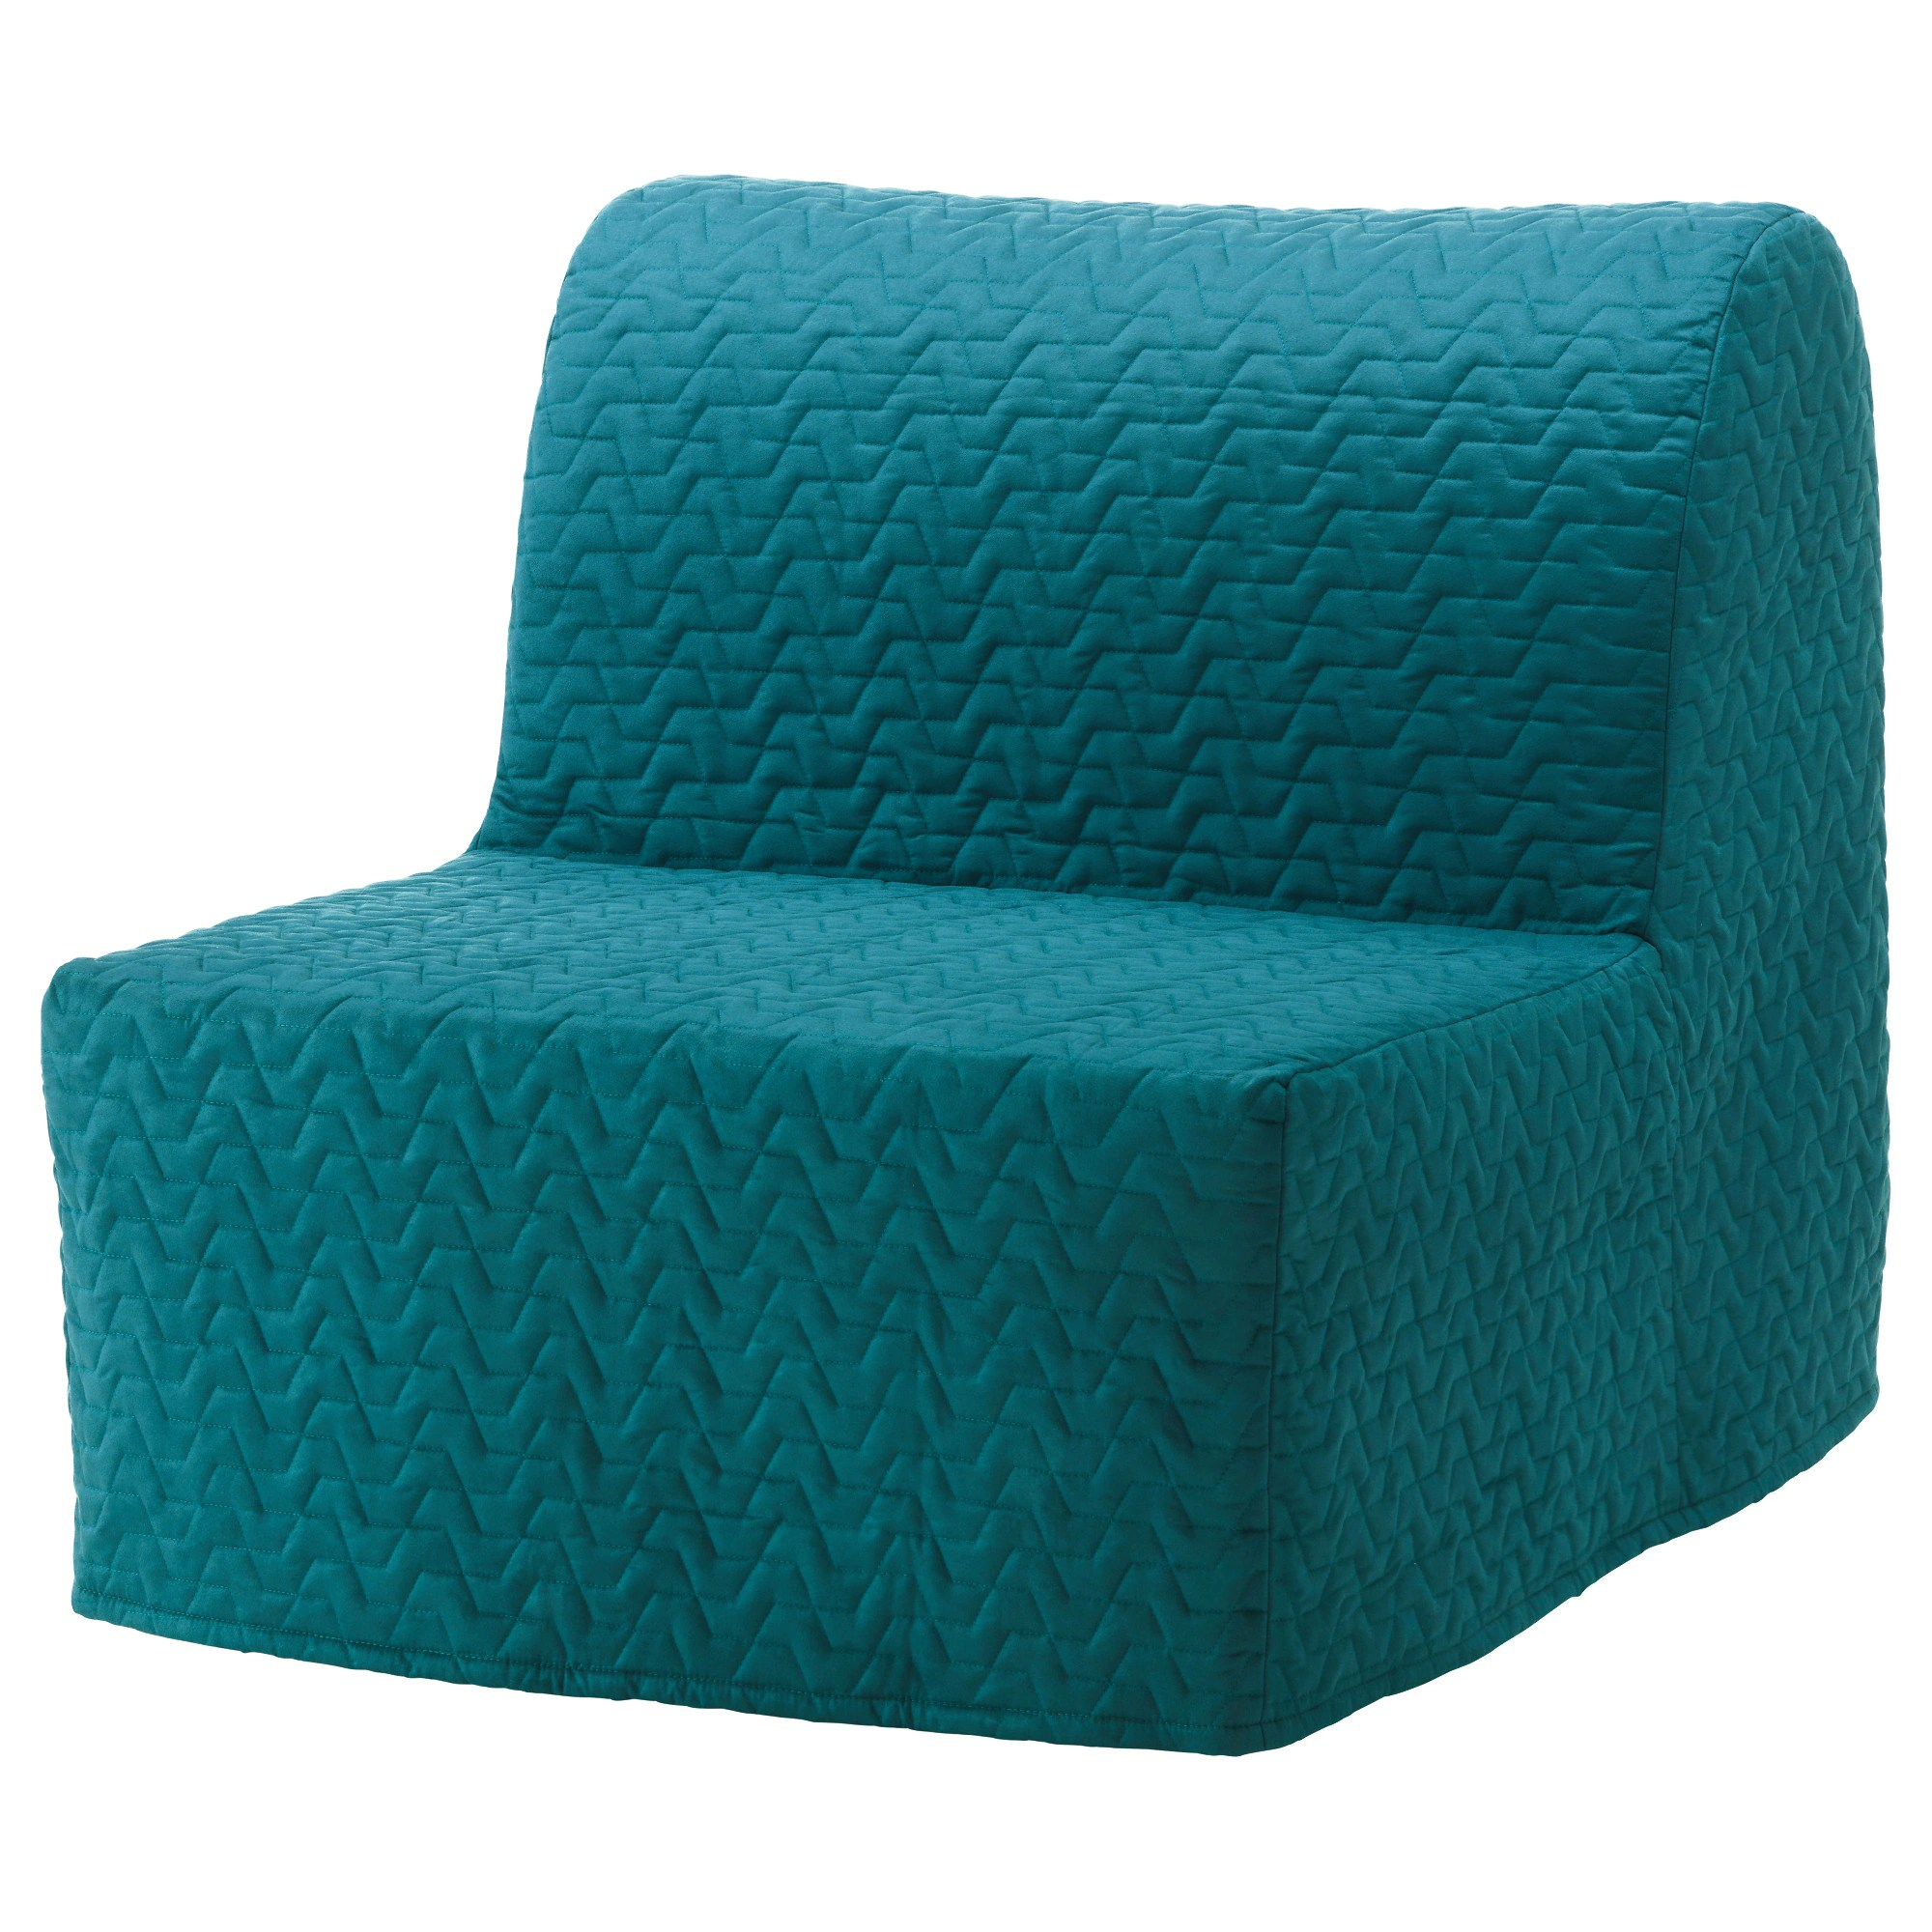 Bettsessel Ikea Lycksele LÖvÅs Chair-bed - Vallarum Turquoise - Ikea